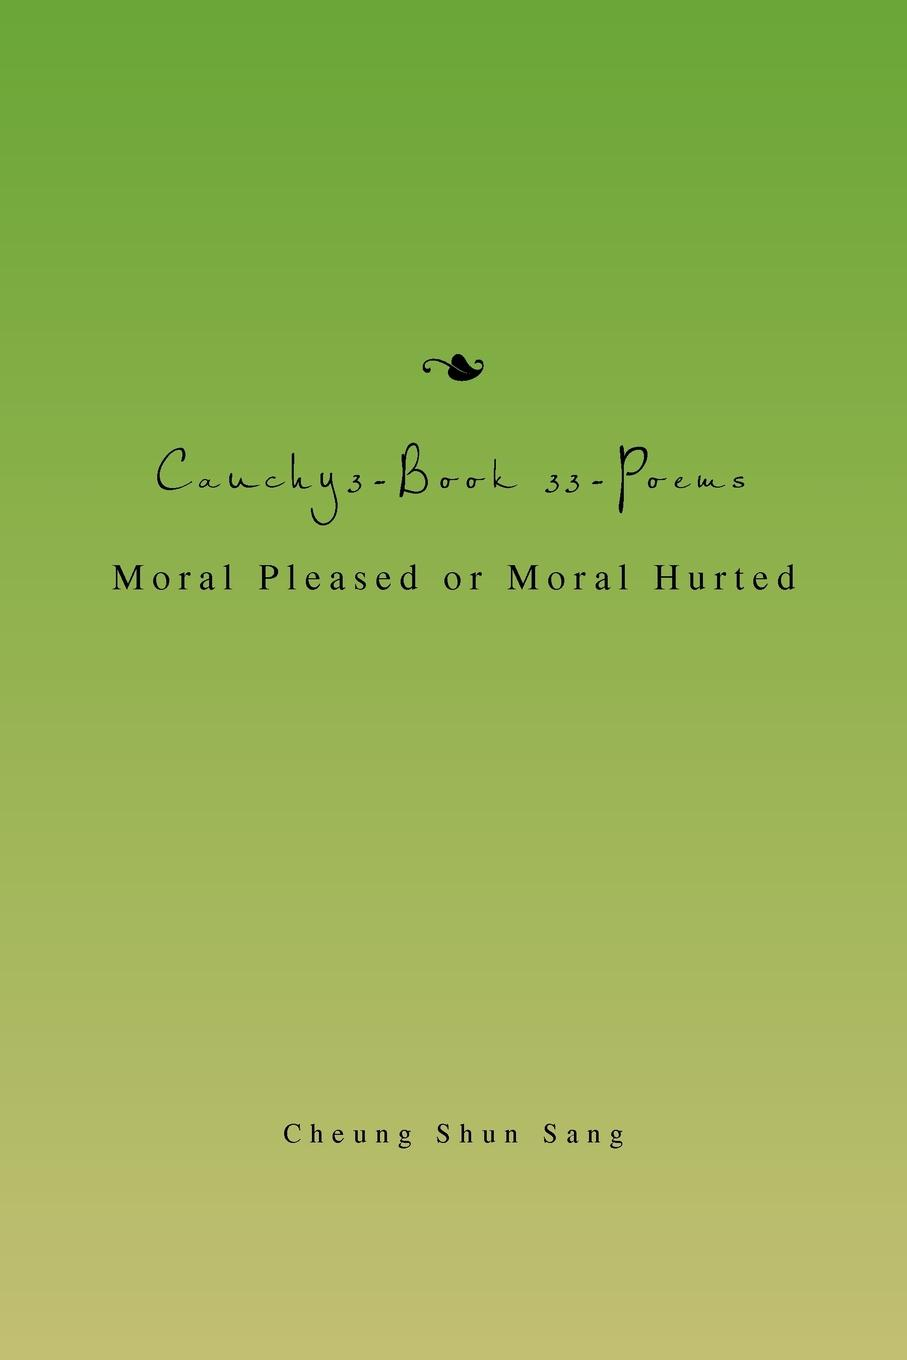 Cheung Shun Sang Cauchy3-Book 33-Poems. Moral Pleased or Moral Hurted цены онлайн